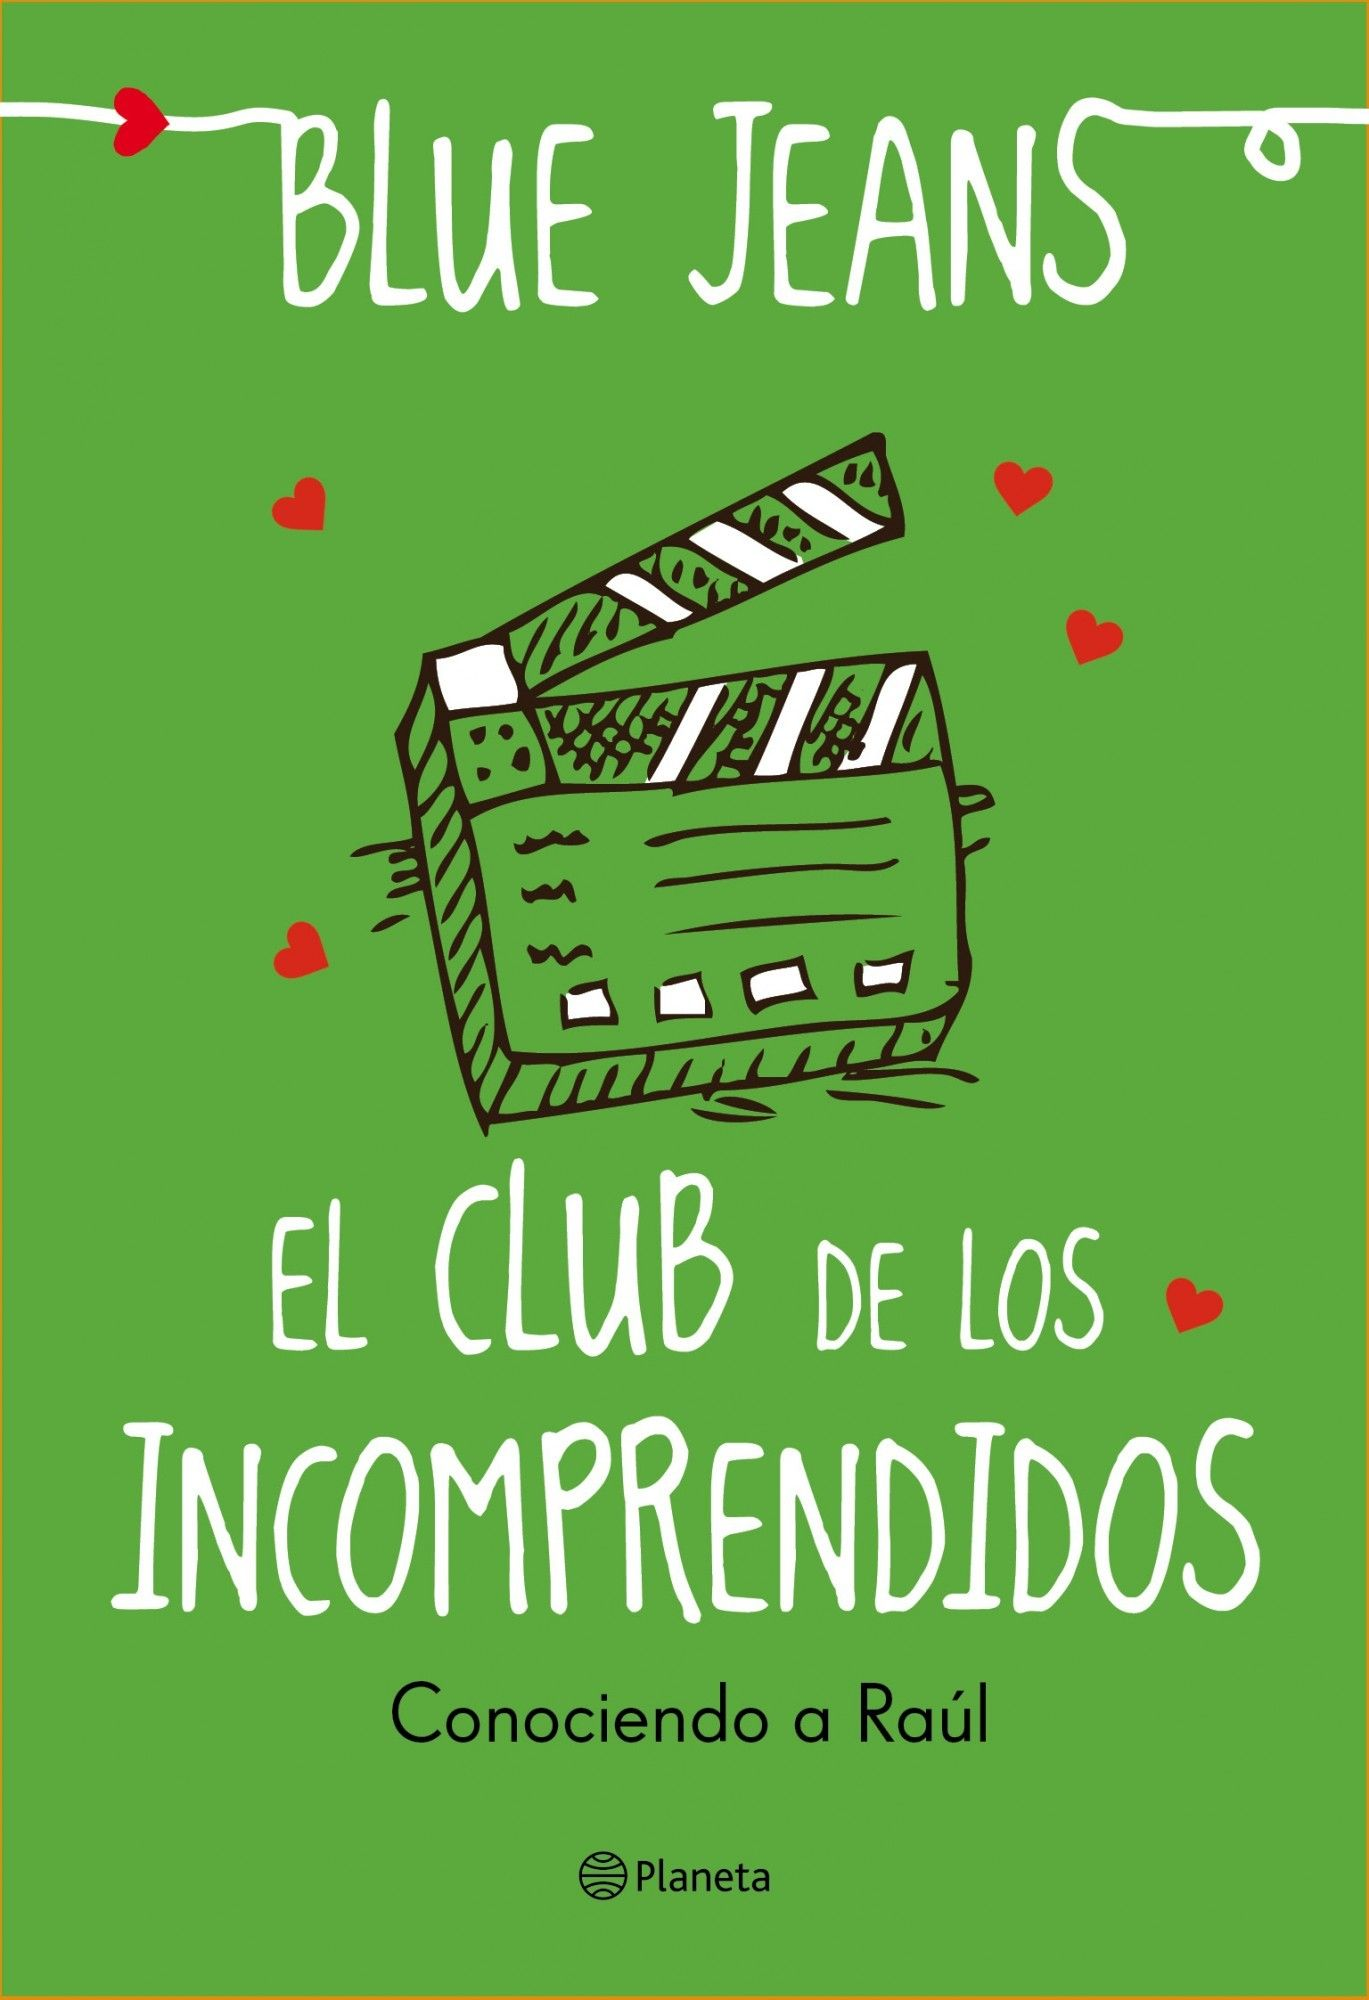 El club de los incomprendidos blue jeans books pinterest el club de los incomprendidos blue jeans fandeluxe